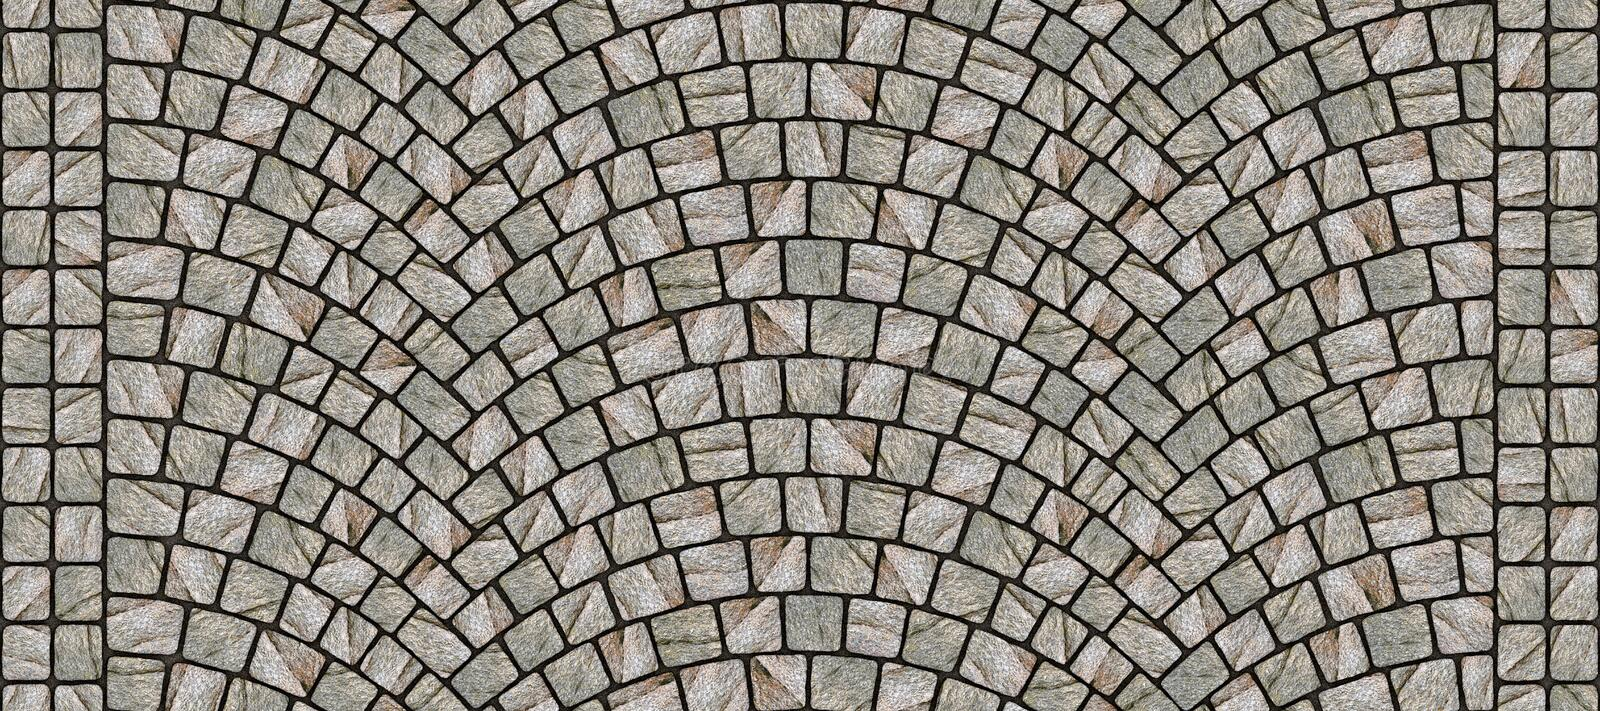 Road curved cobblestone texture 079. Cobblestone arched pavement road with edge courses at the sidewalk. Seamless tileable repeating 3D rendering texture vector illustration